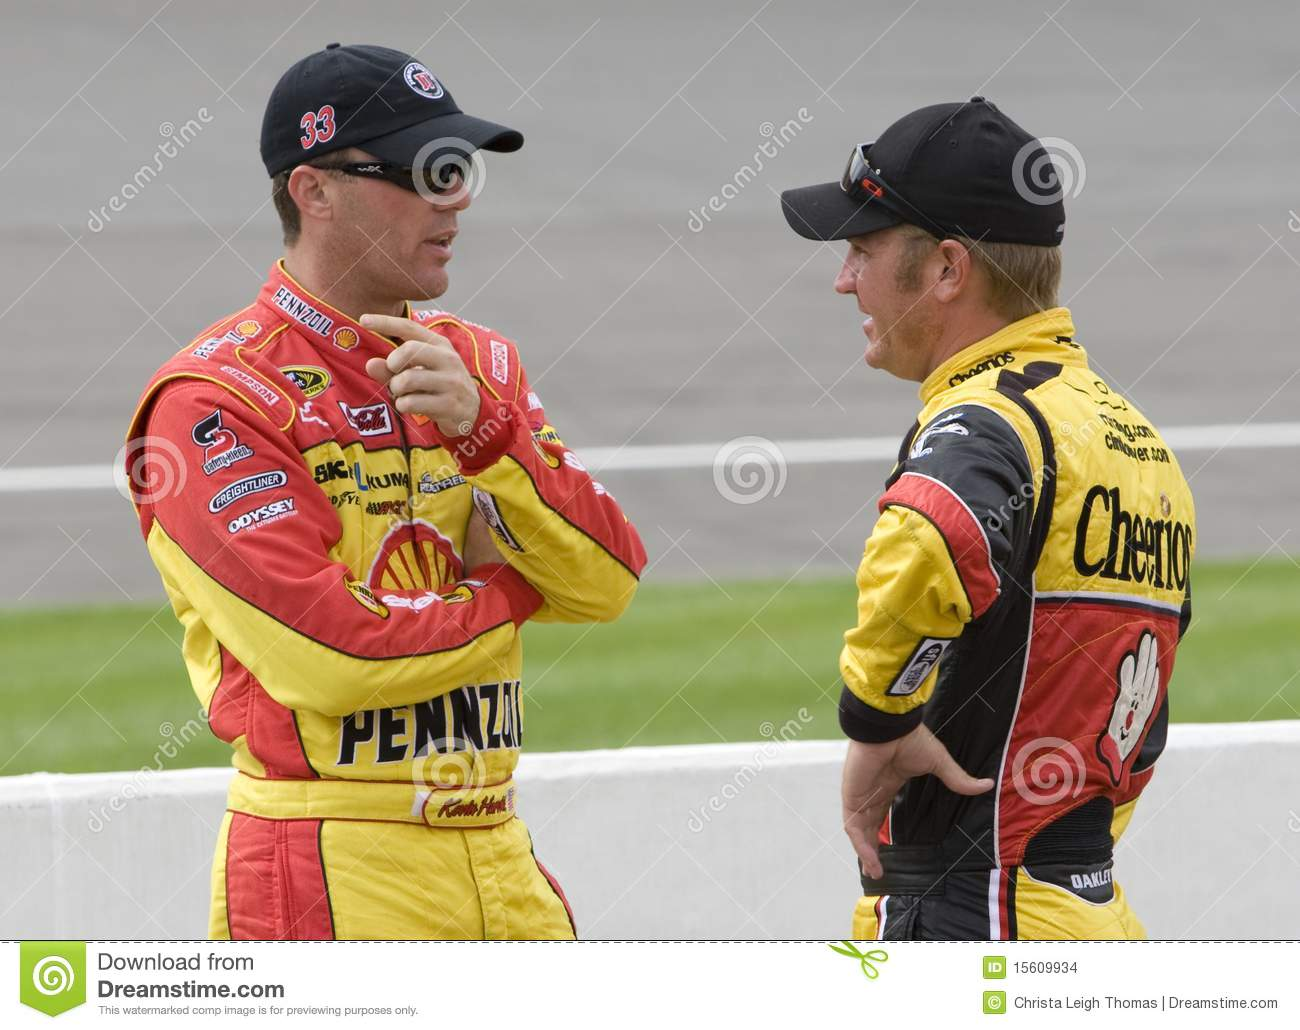 Bowyer clint harvick Kevin rozmowy